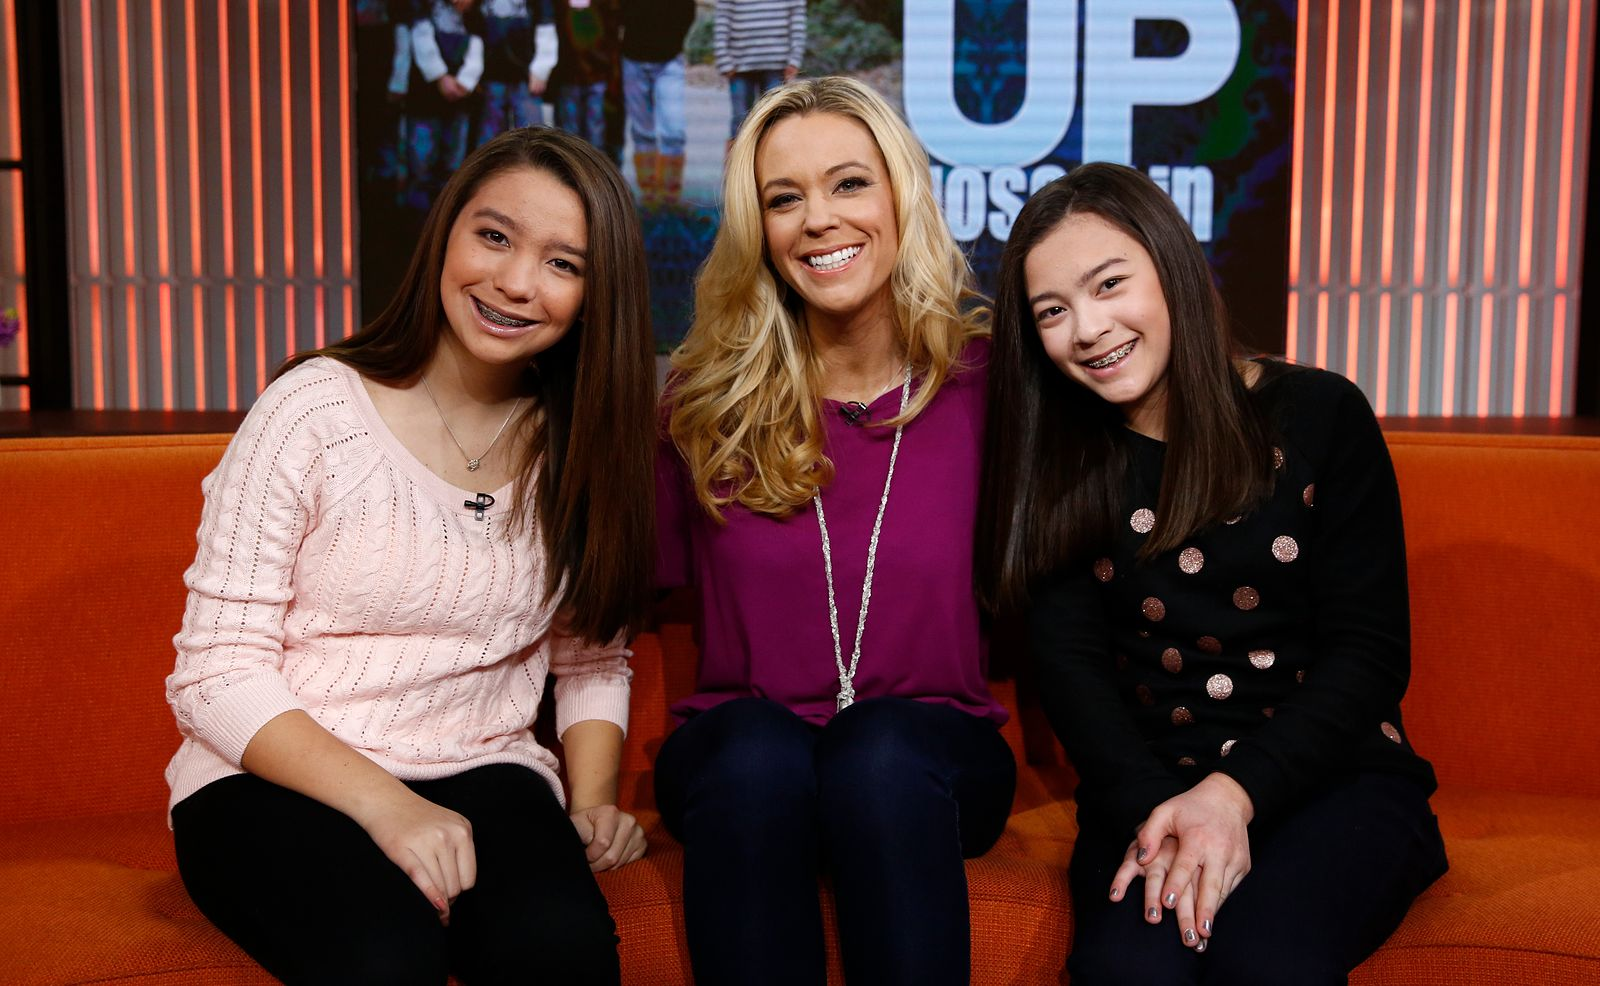 """Cara, Kate,and Mady Gosselin appear on NBC News' """"Today"""" show on January 16, 2014   Photo: Peter Kramer/NBC/NBC Newswire/NBCUniversal/Getty Images"""